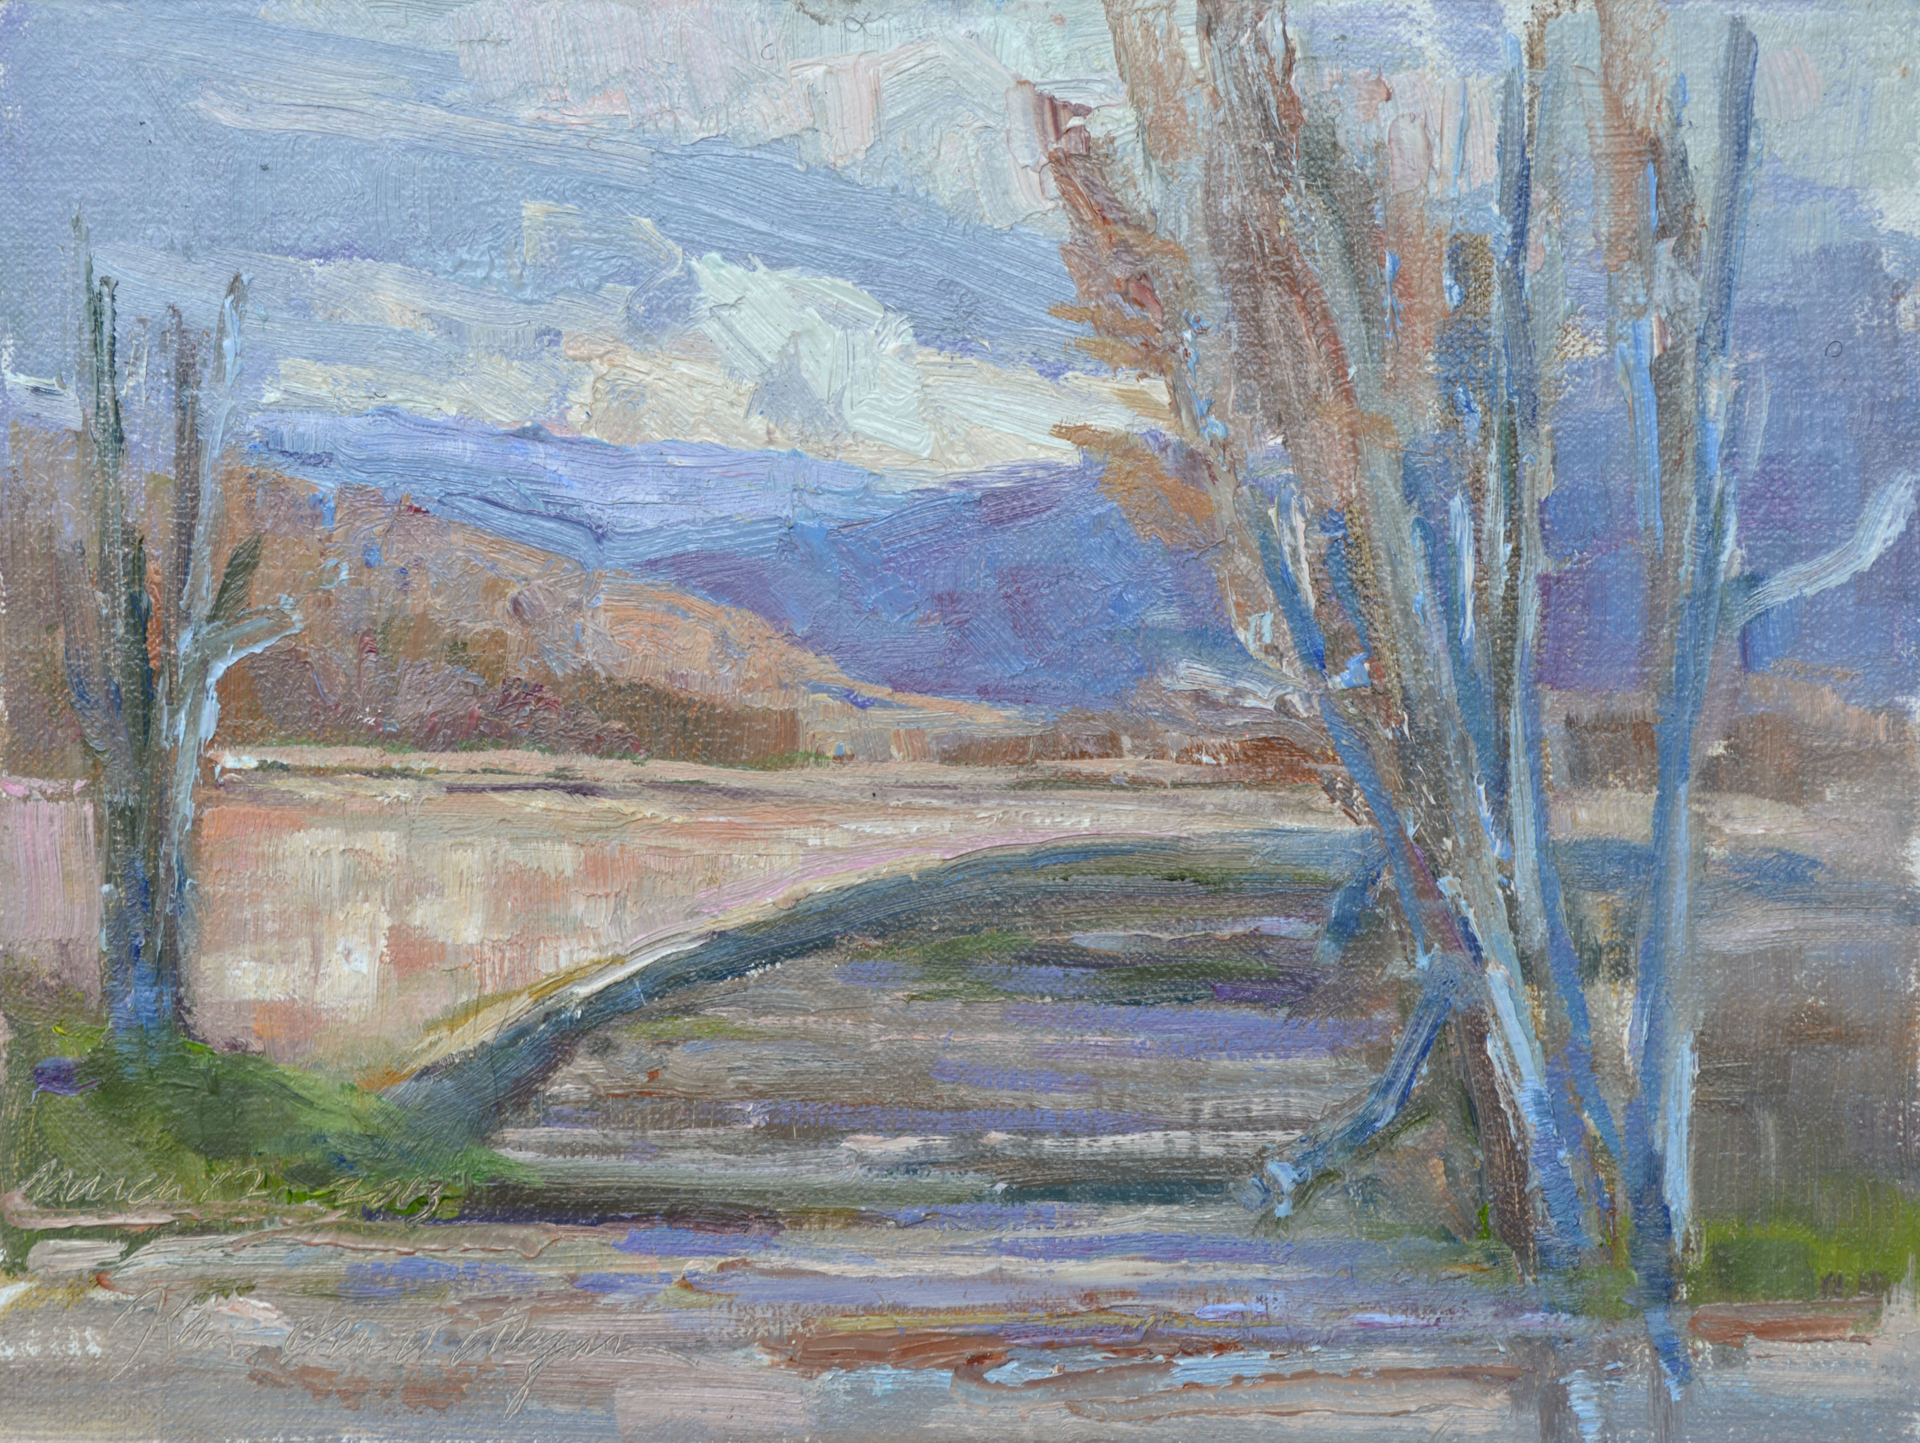 The Arno River On a Cold Day by Karen Hewitt Hagan